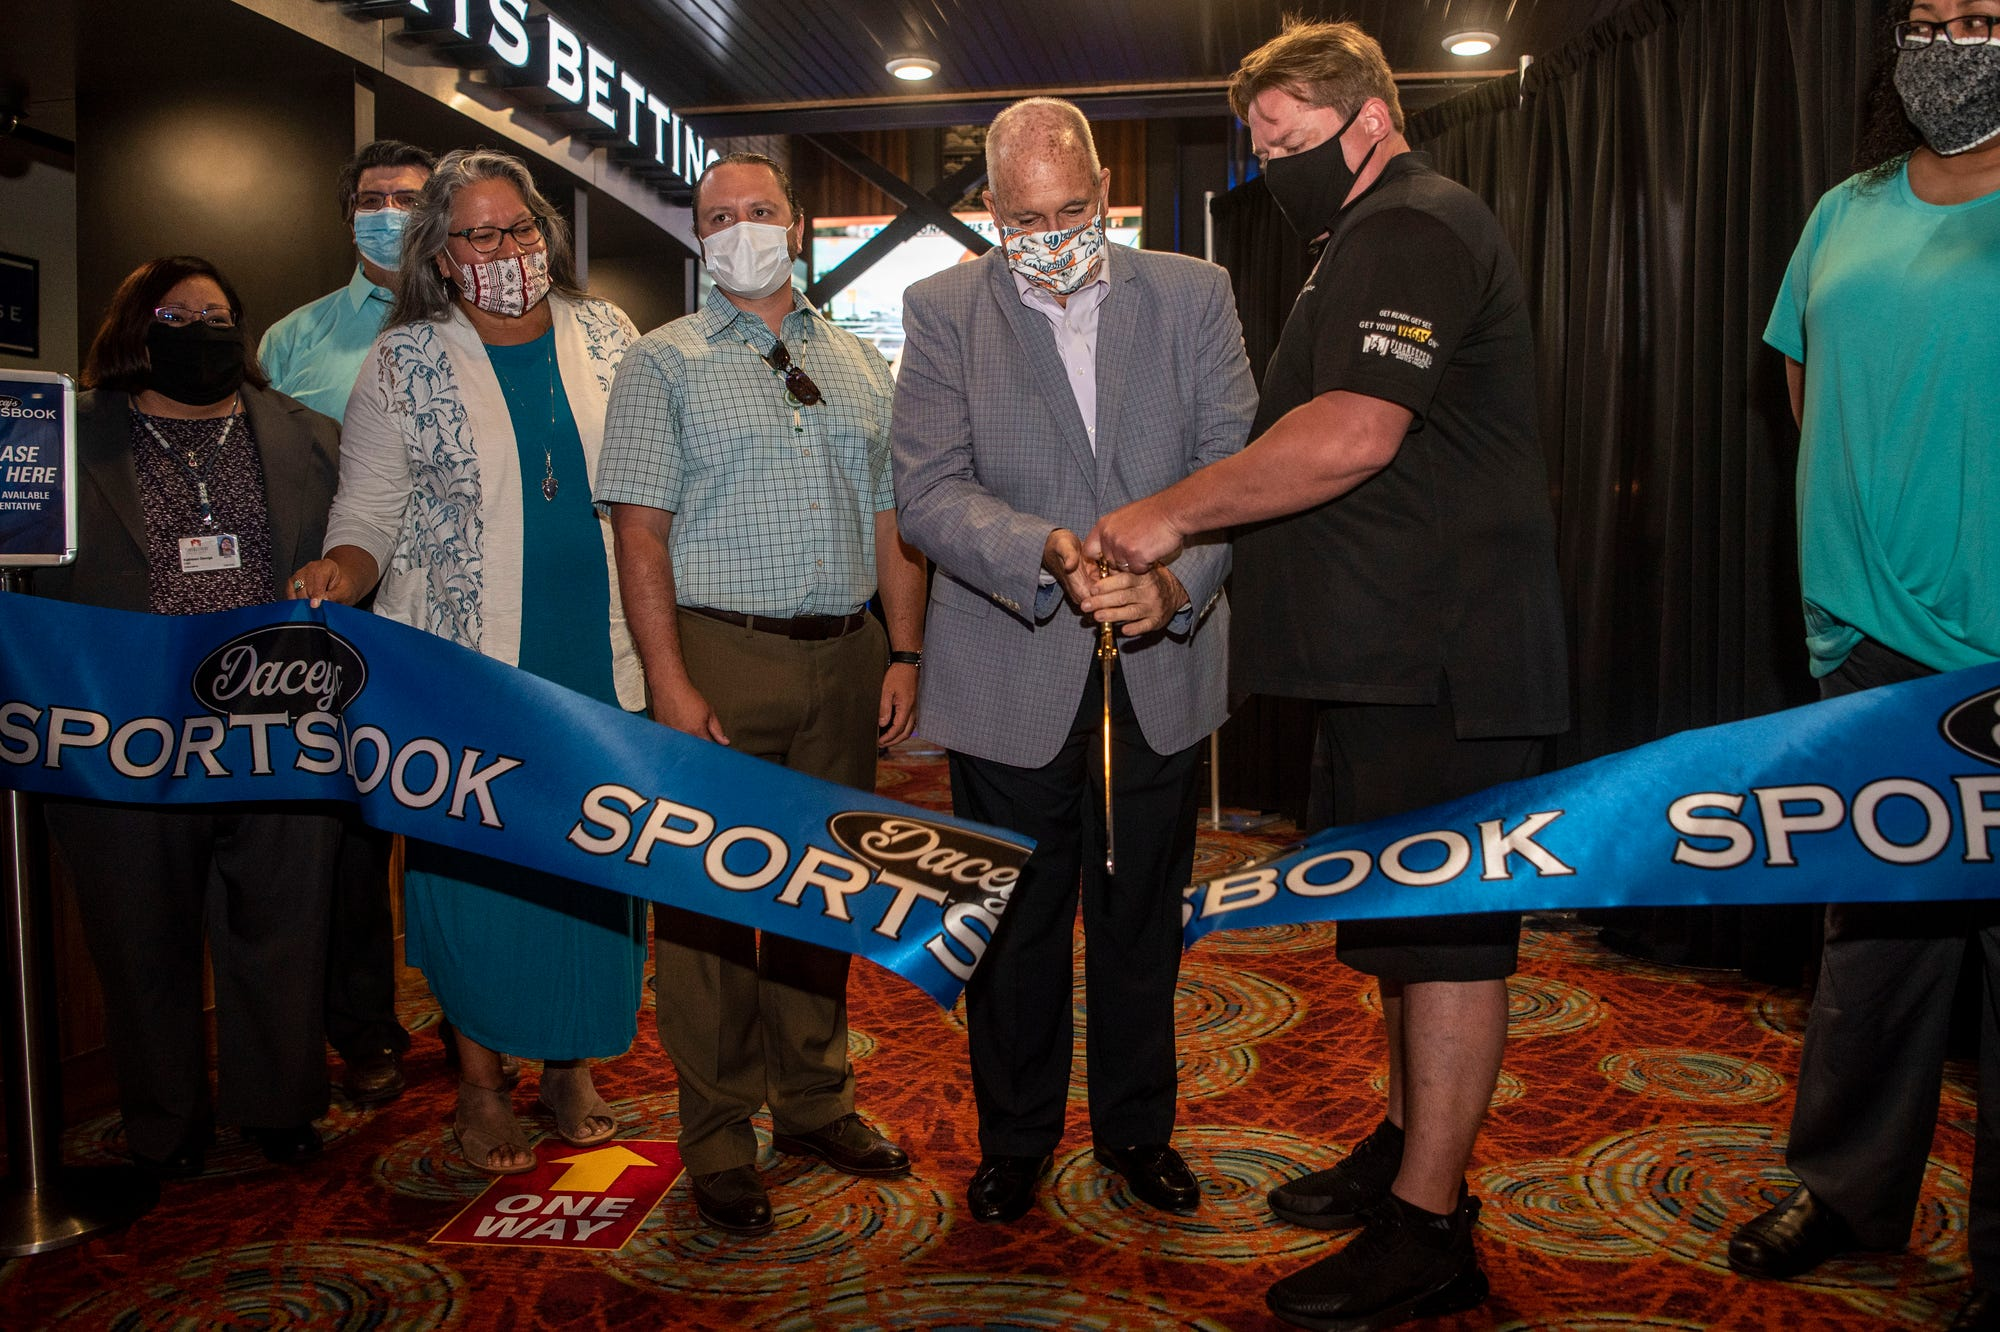 Jim Dacey and Jamie Stuck cuts the ribbon to FireKeepers Casino Hotel's Dacey's Sportsbook for sports betting on Monday, June 22, 2020 in Battle Creek, Mich.